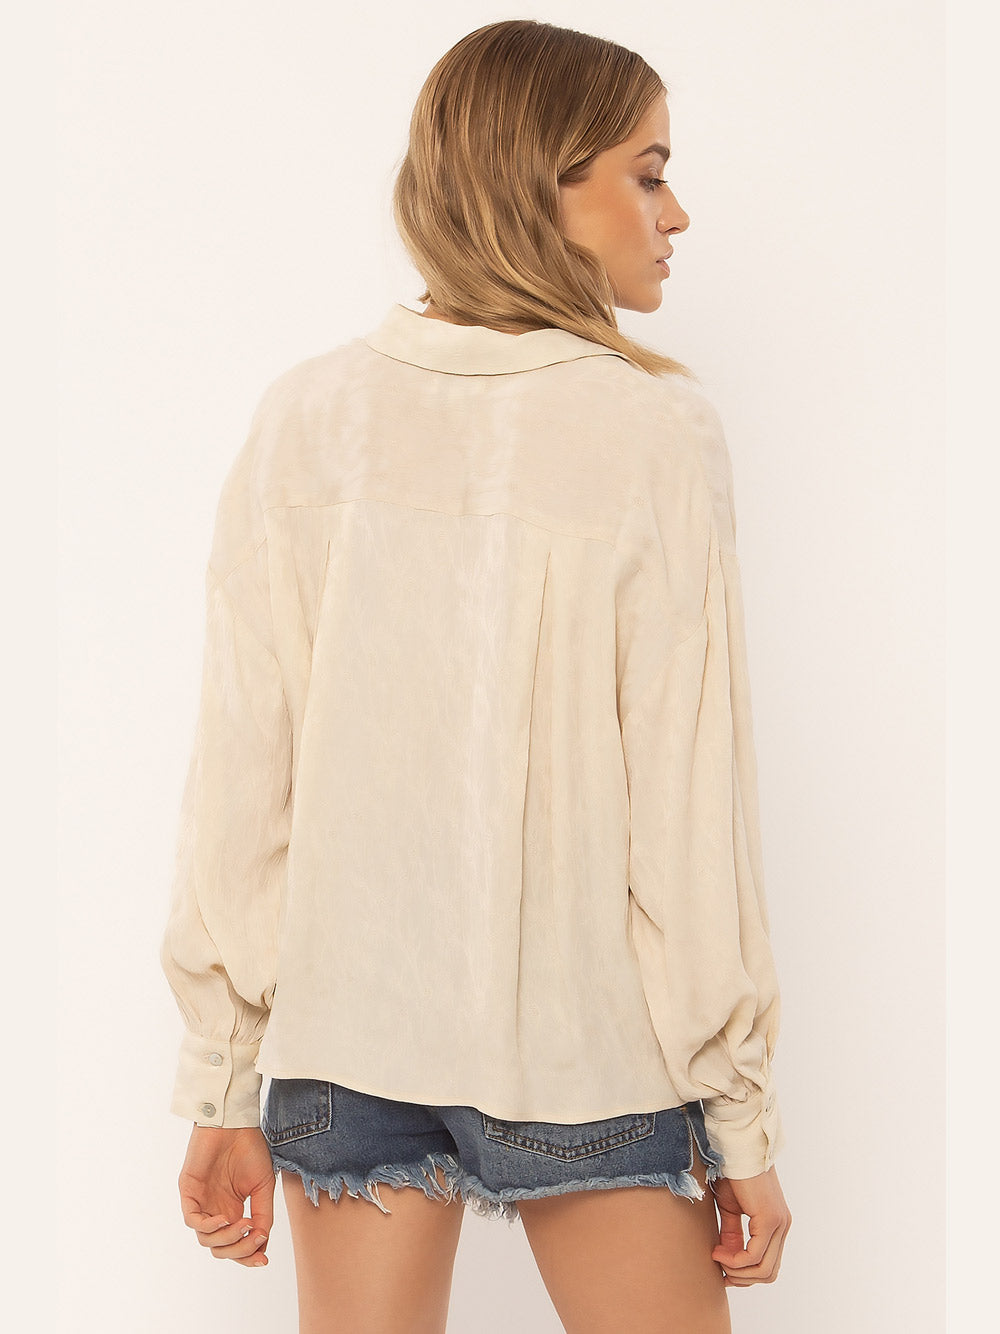 AMUSE SOCIETY Maya Bay Woven Blouse - CREAM